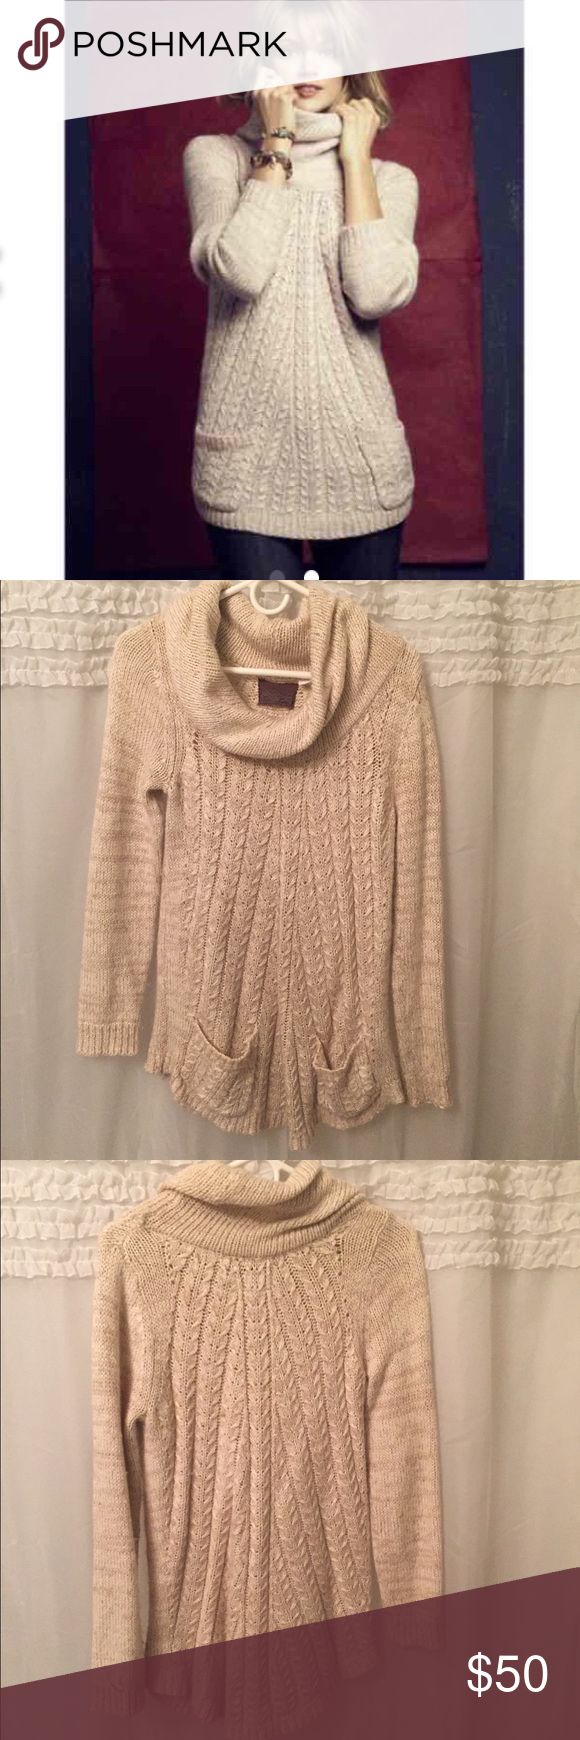 Anthropologie sweater tunic Cream colored thick sweater tunic. Has ...